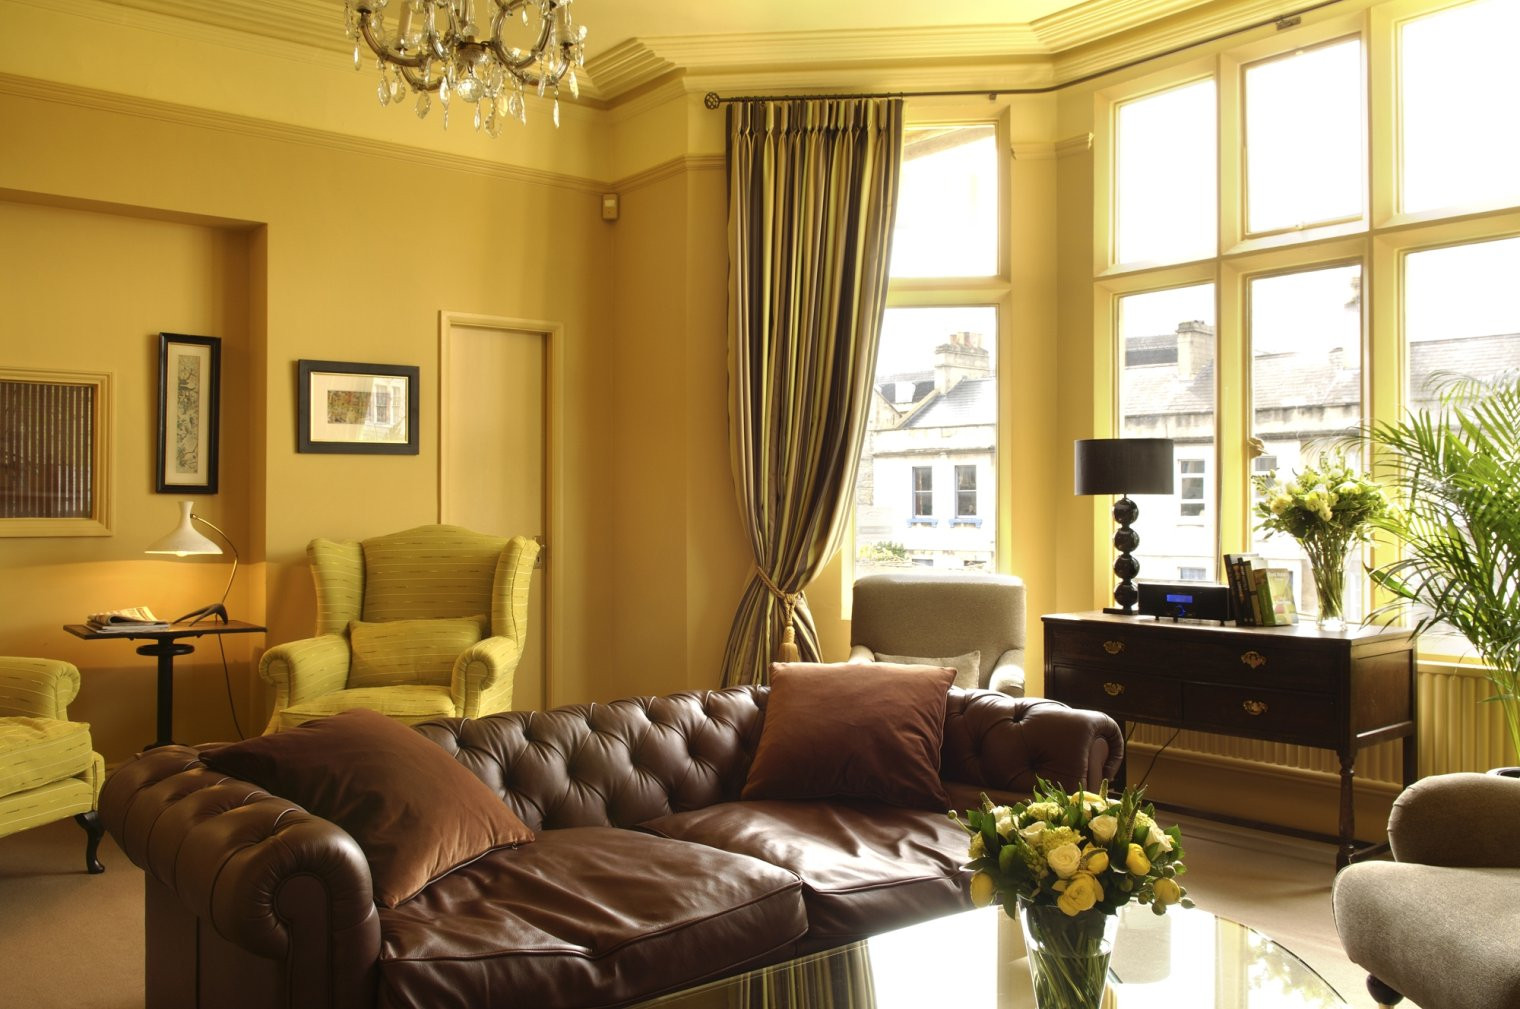 Best ideas about Decorating A Living Room . Save or Pin Affordable Ideas for Decorating Living Room Interior Now.